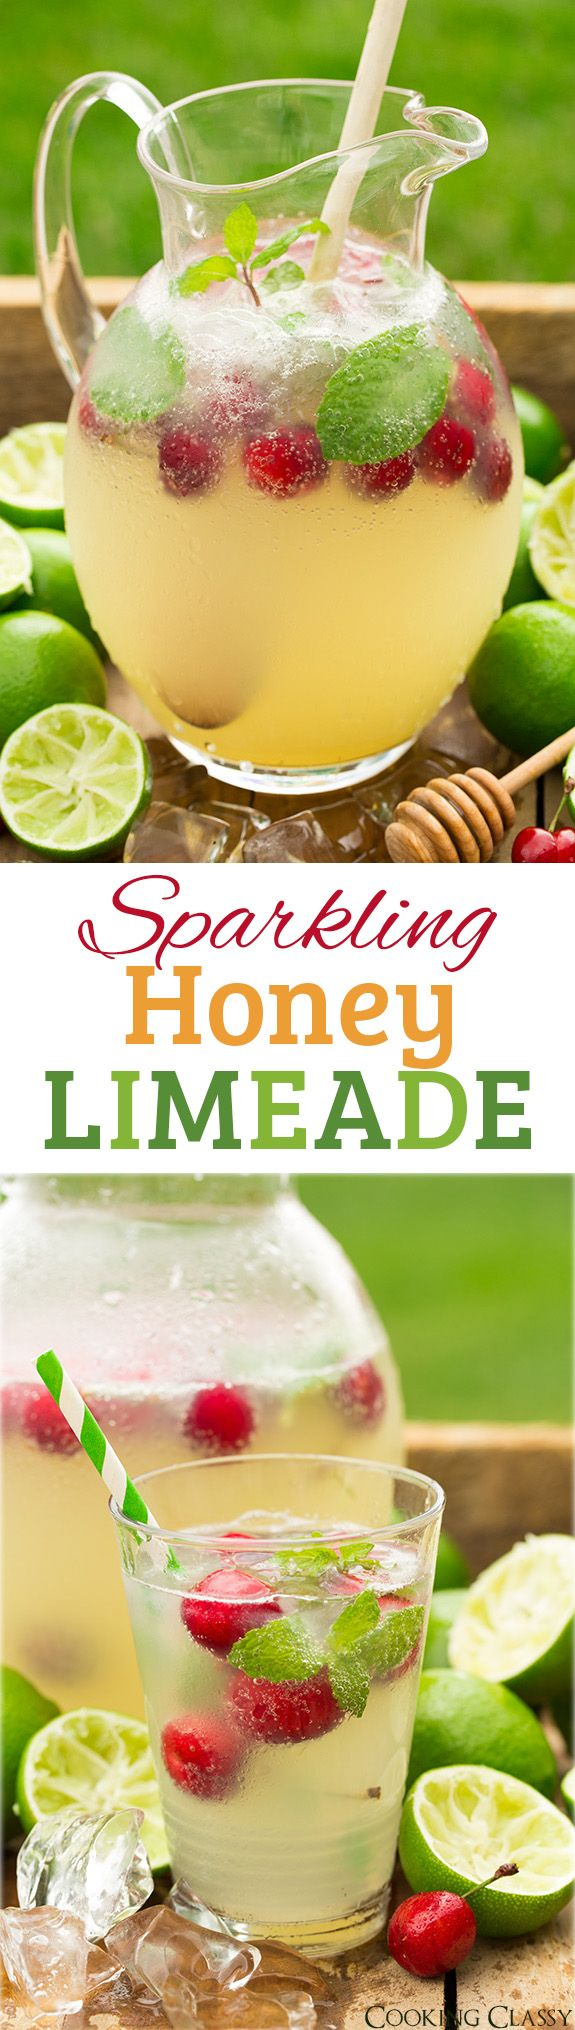 Sparkling Honey Limeade - Such a refreshing drink!!